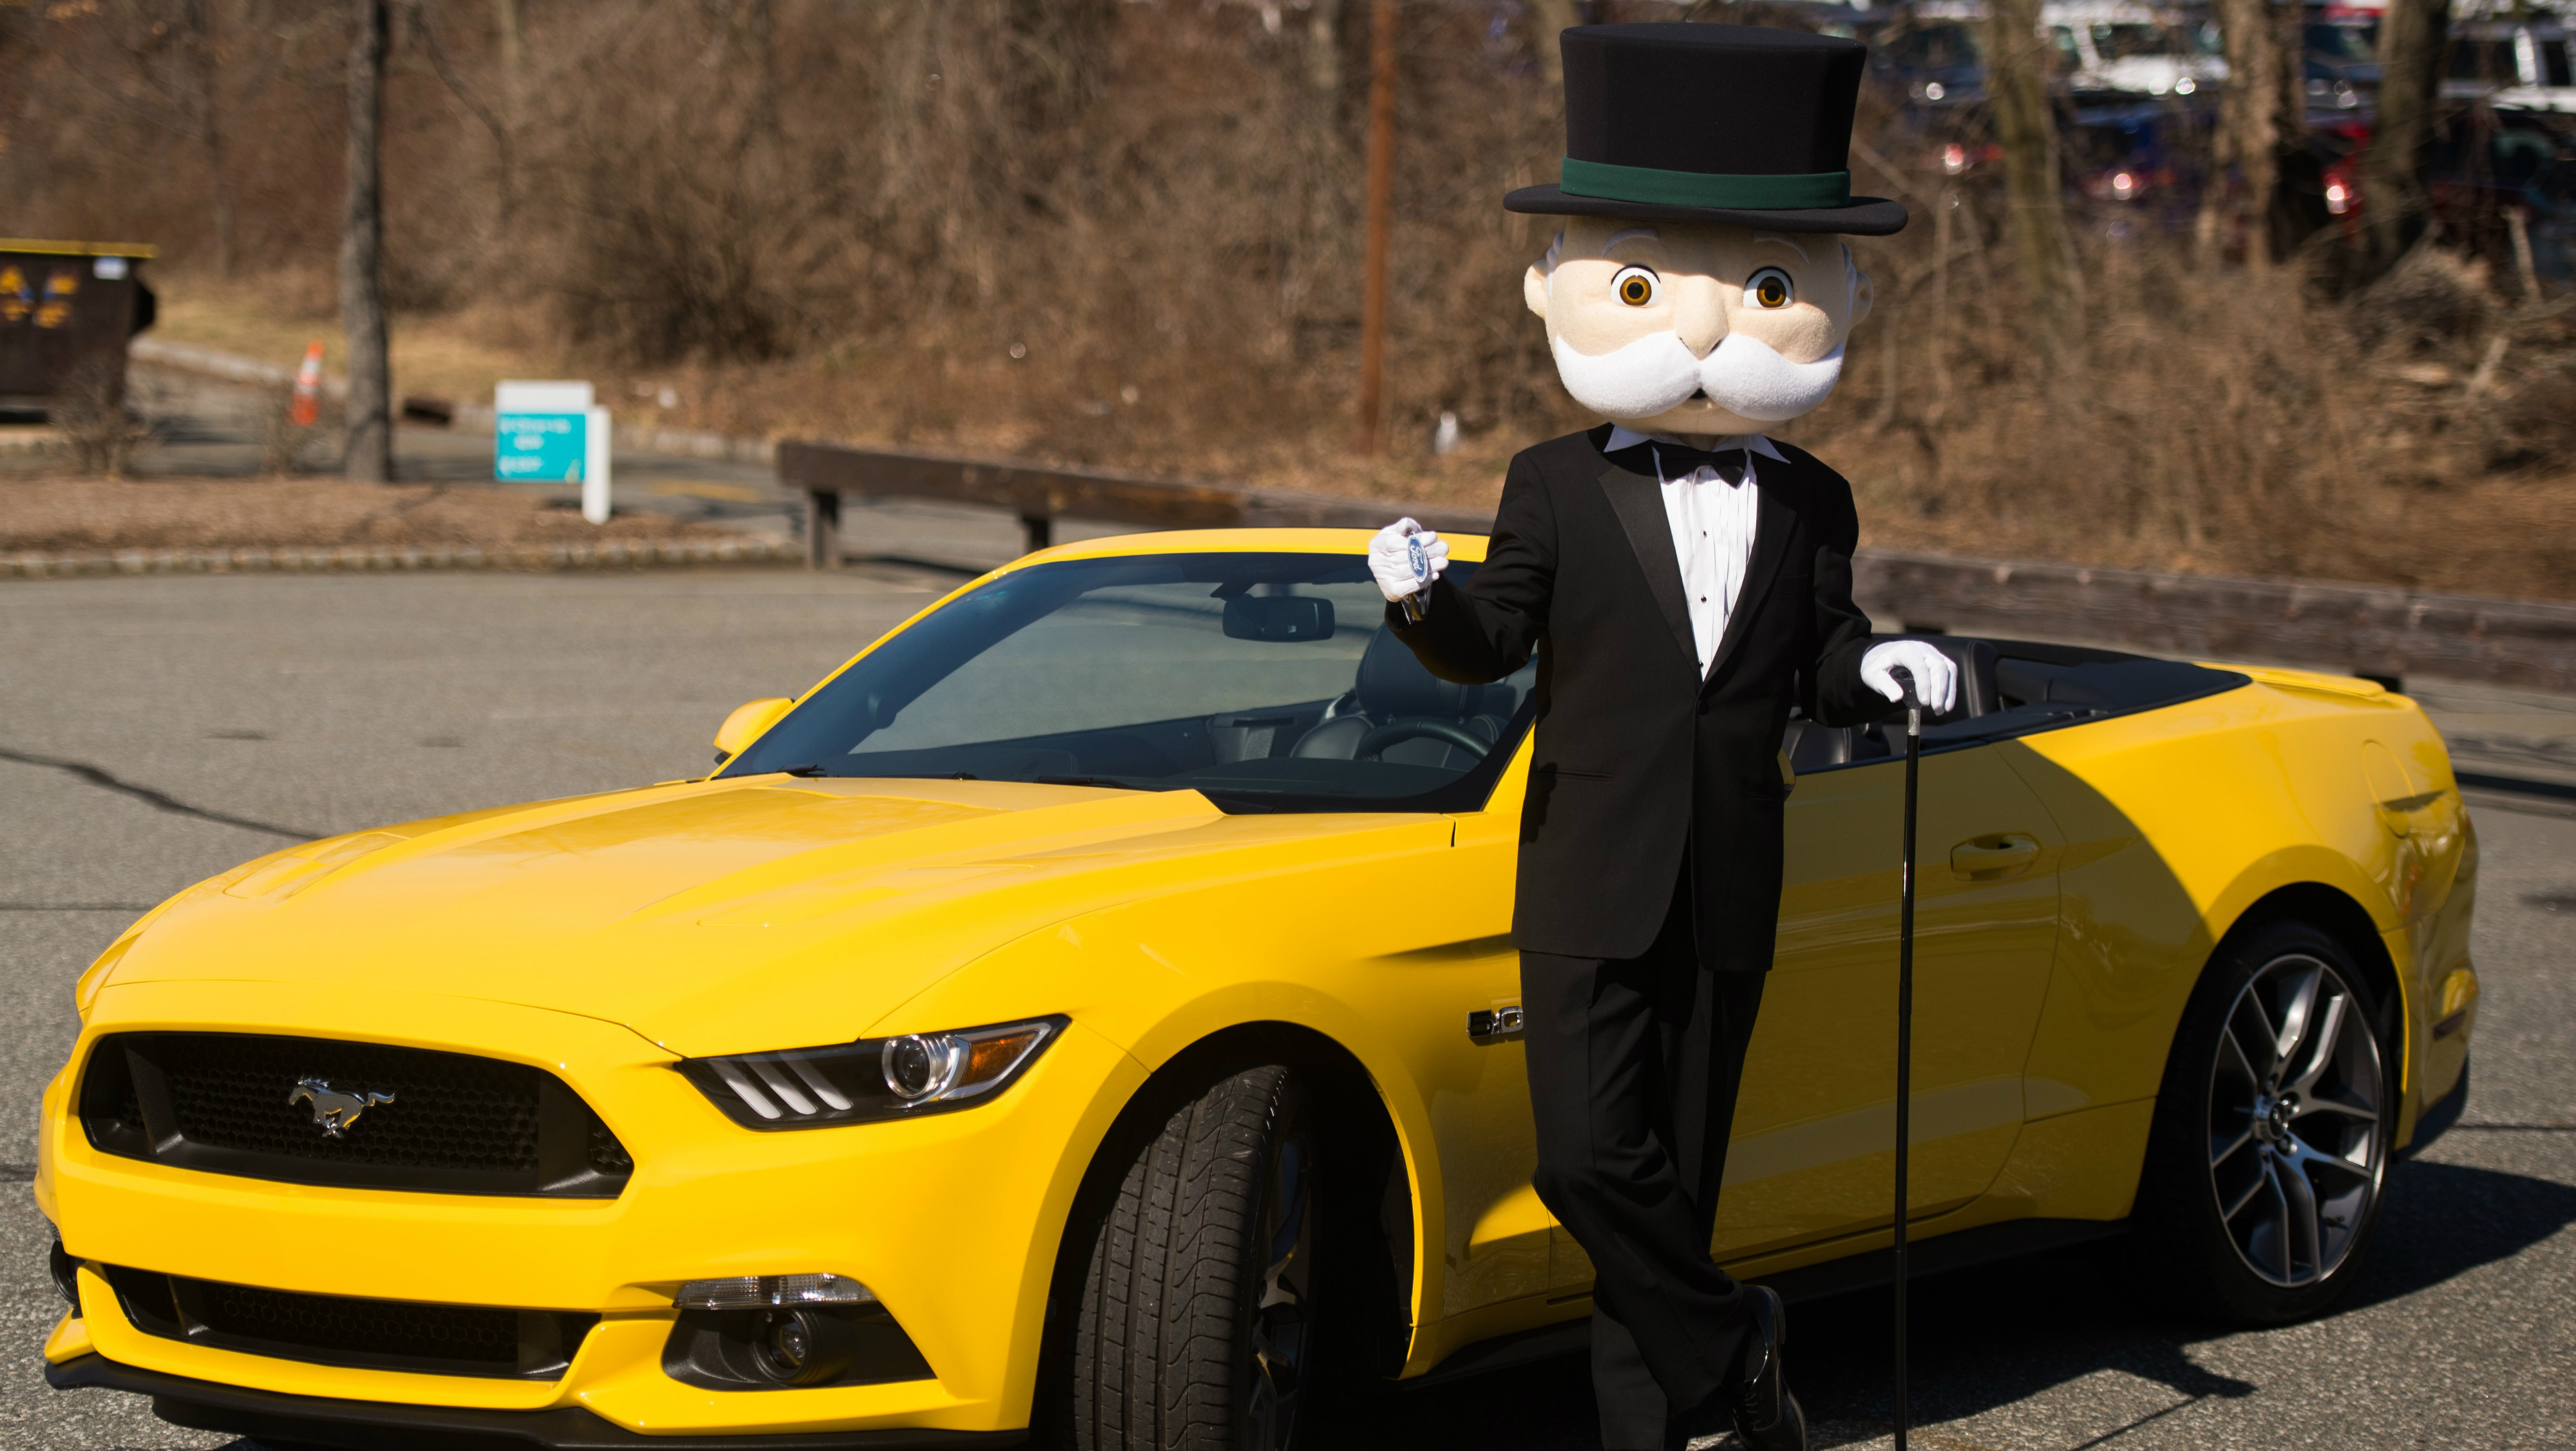 MR. MONOPOLY gears up to enjoy a ride in a Ford Mustang.